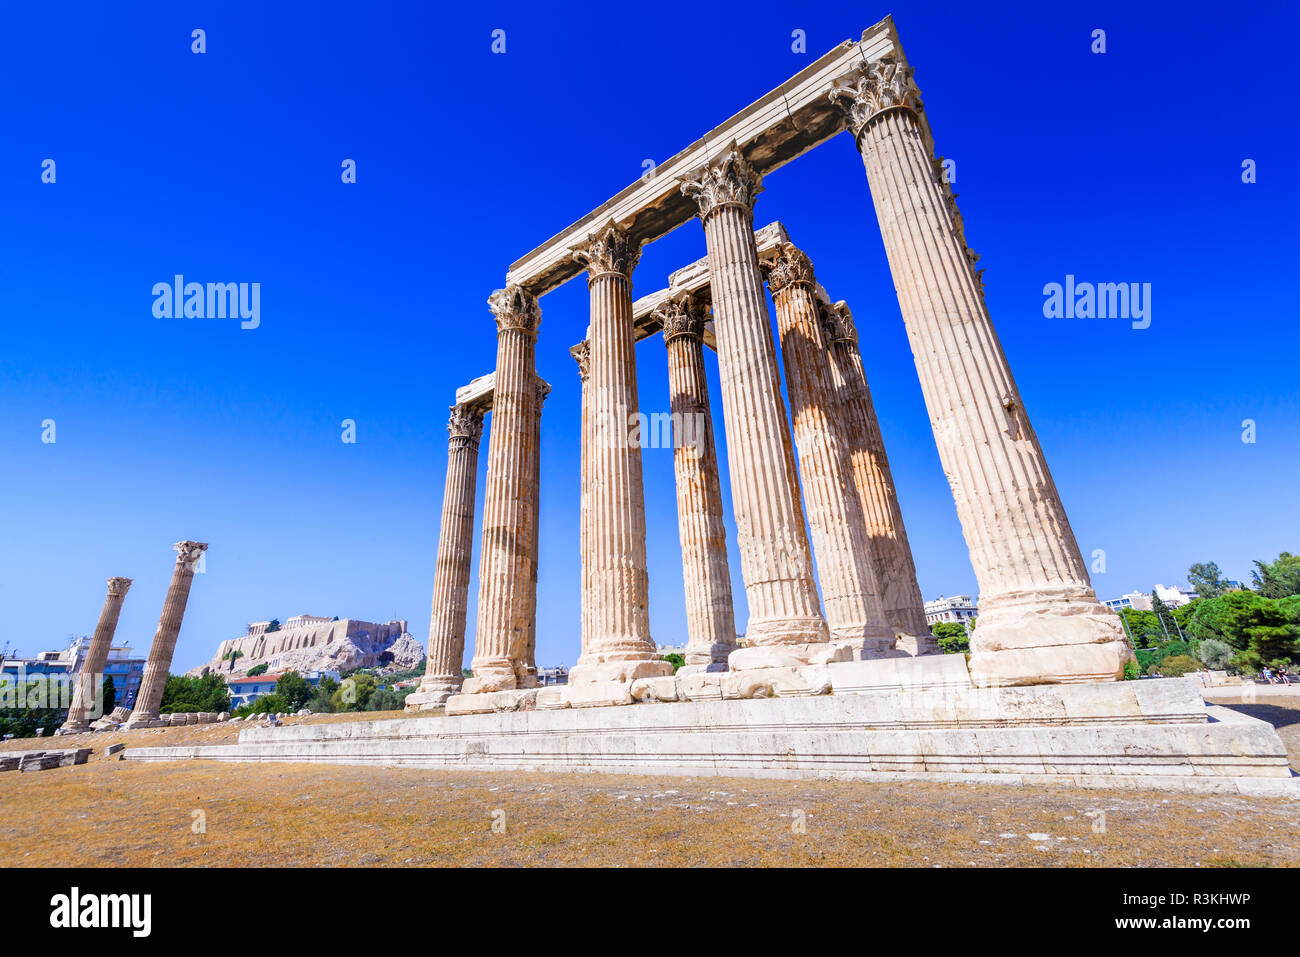 Athens, Greece - Temple of Olympian Zeus, largest in Ancient Greek civilization, Olympieion. - Stock Image